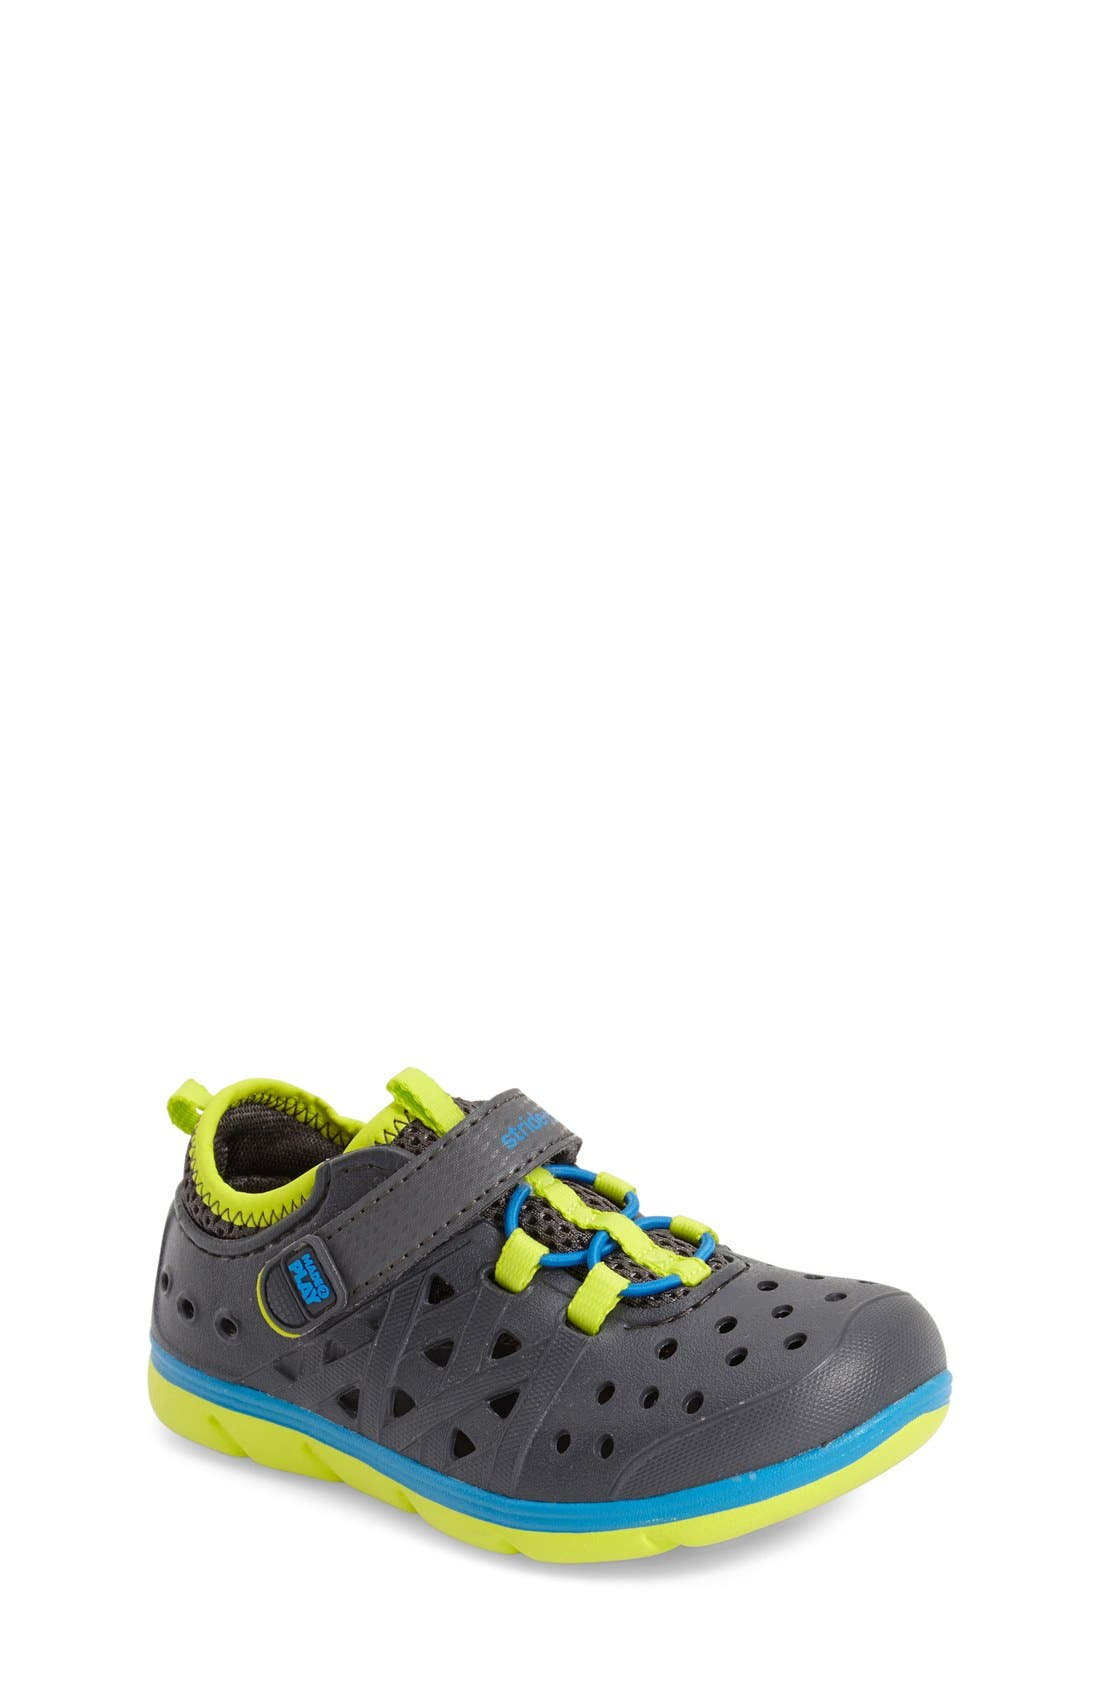 Alternate Image 1 Selected - Stride Rite 'Made2Play® Phibian' Sneaker (Baby, Walker, Toddler & Little Kid)